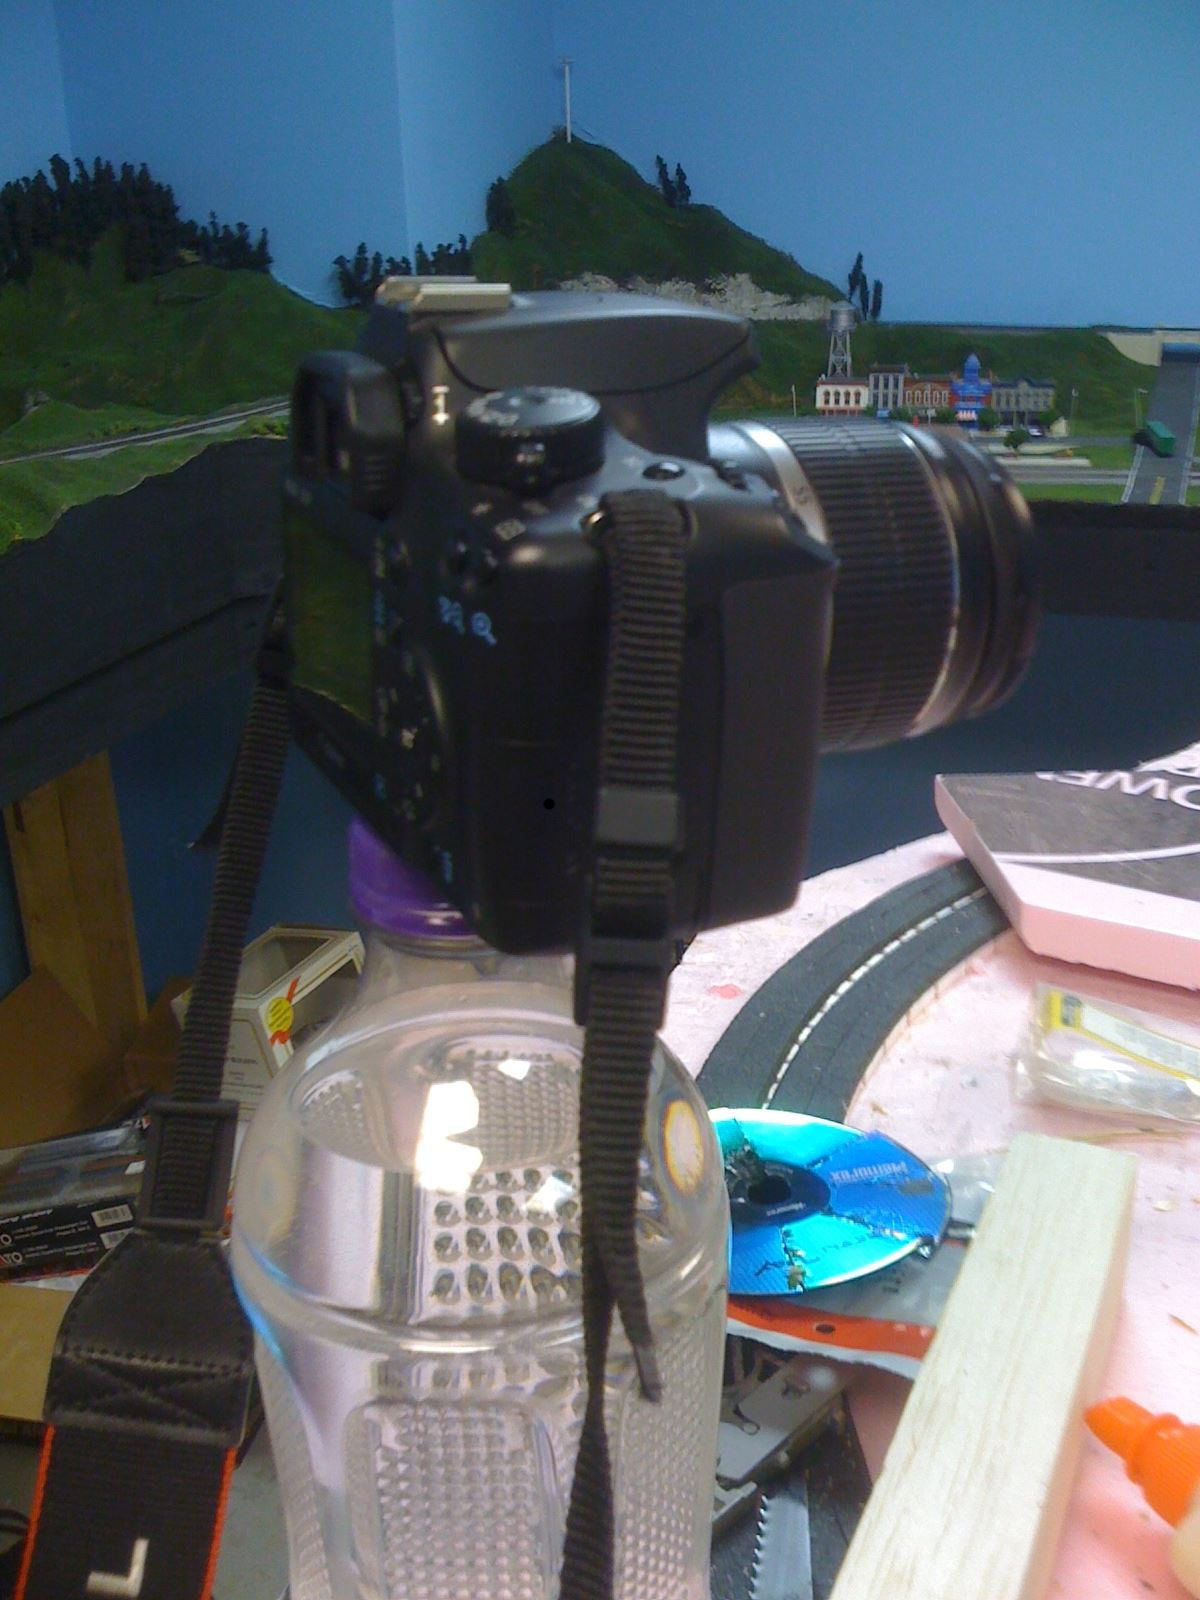 DIY Challenge: Camera tripod with camera phone attachment